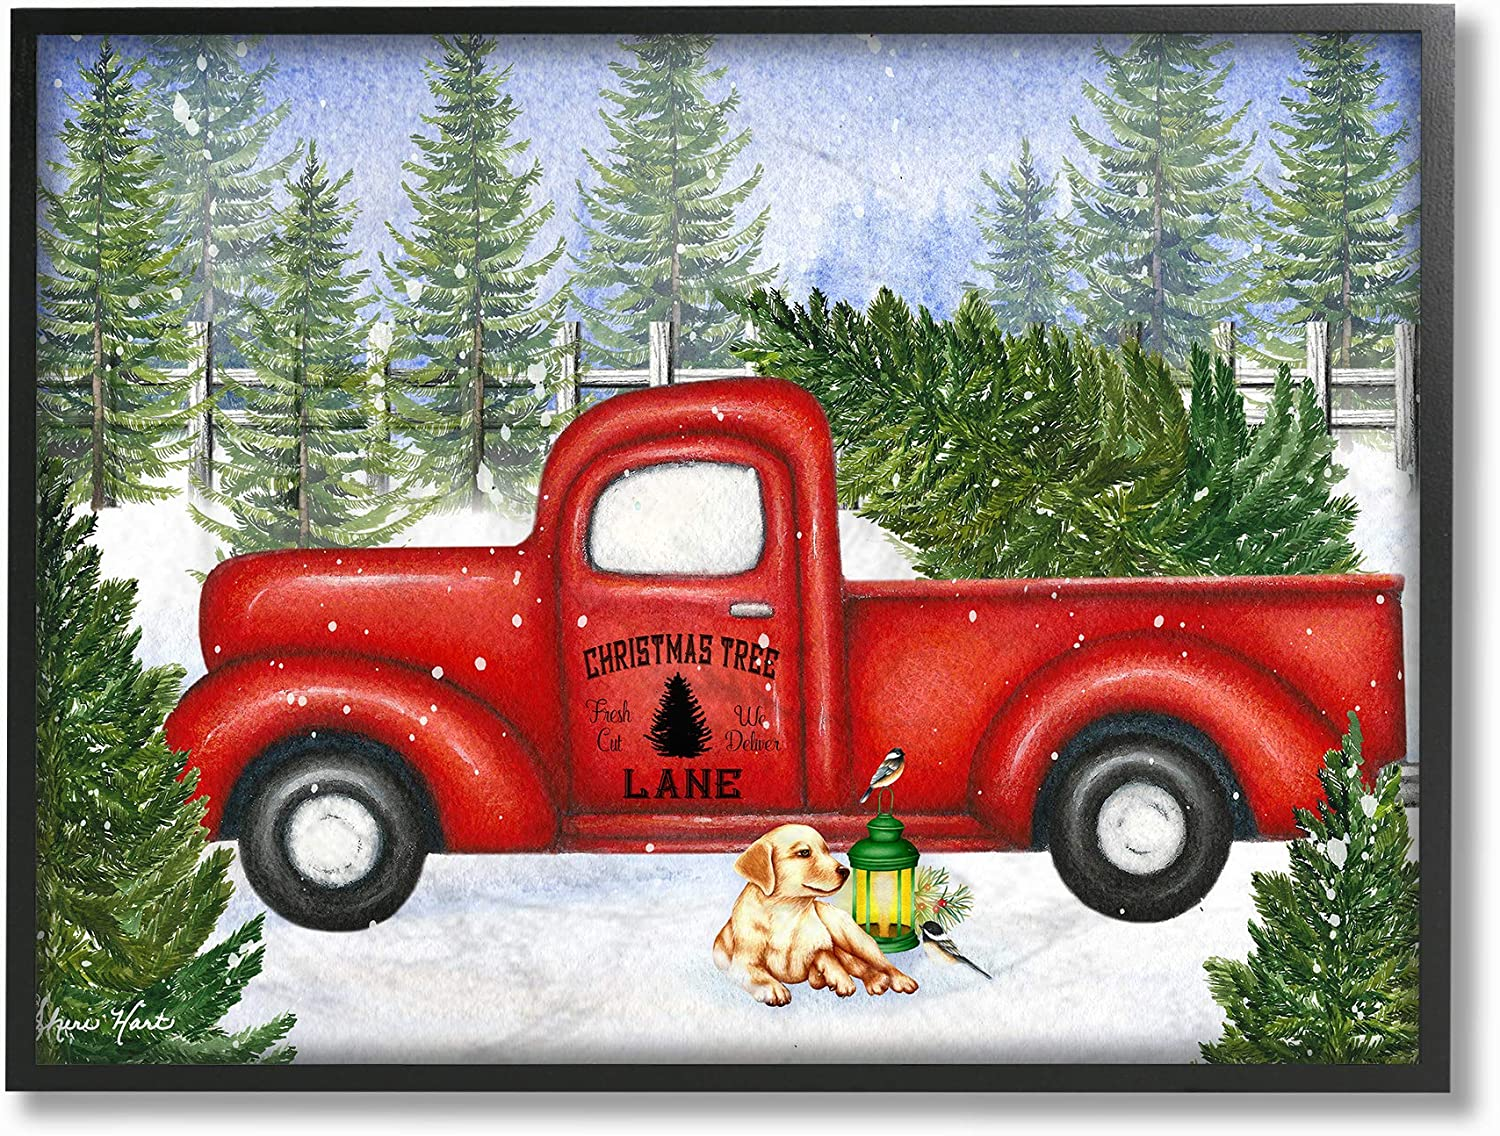 Stupell Industries Home Holiday Christmas Tree Lane Red Pickup Truck with Dog and Lantern Framed Giclee Texturized Art, Multi-color